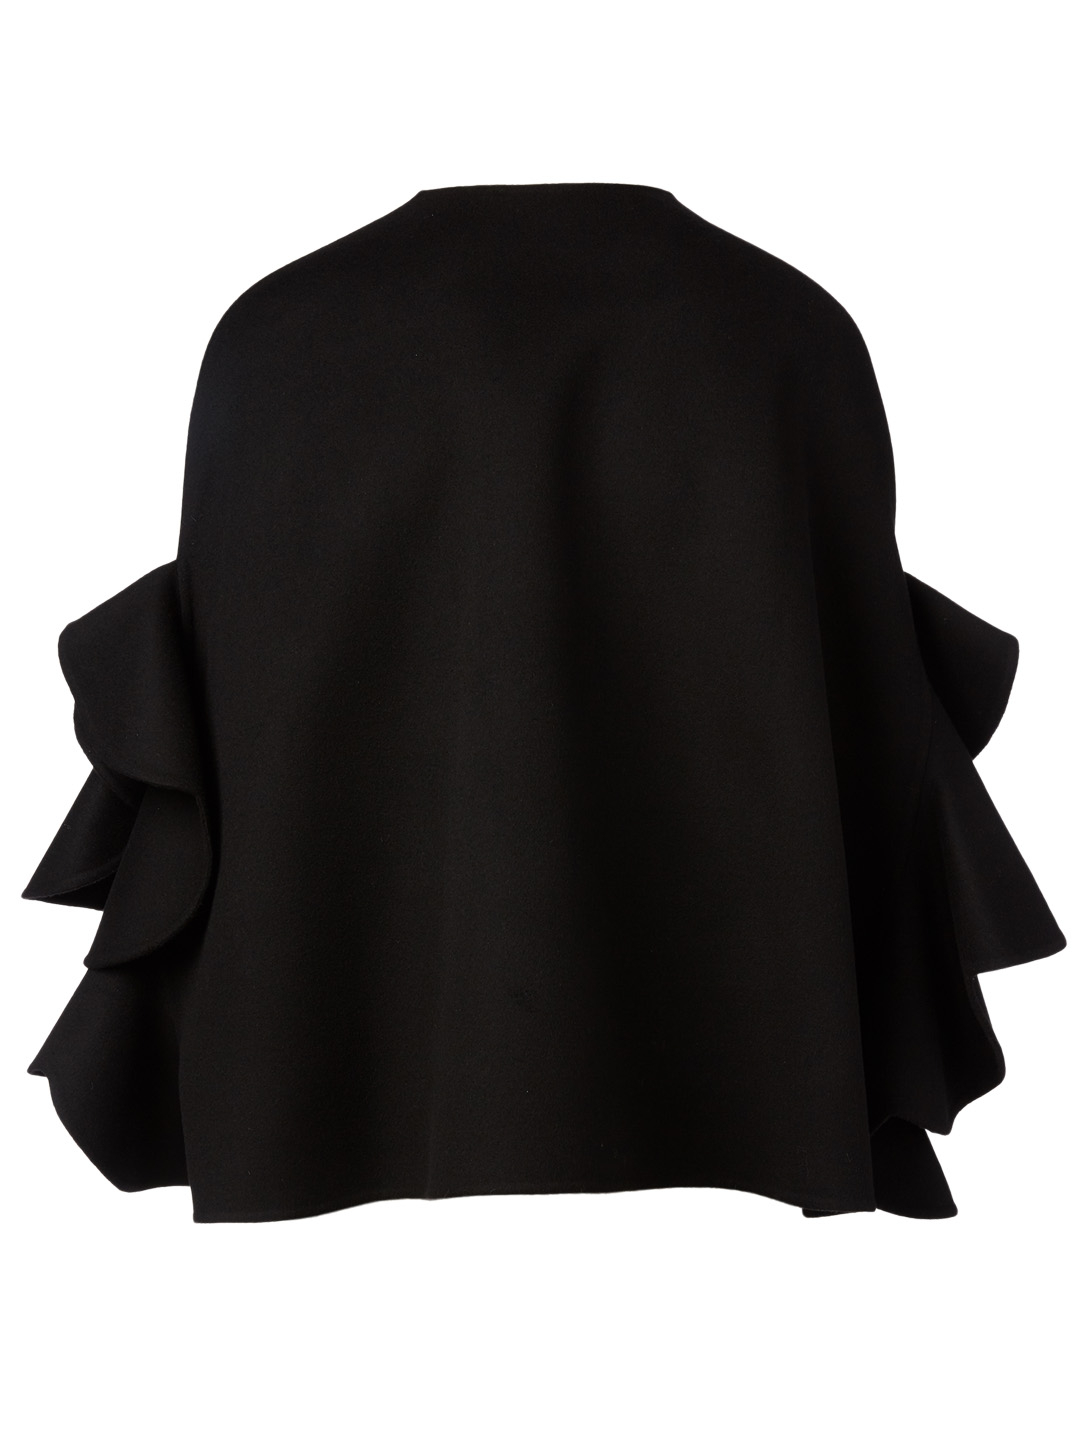 VALENTINO Wool And Cashmere Draped Cape Women's Black